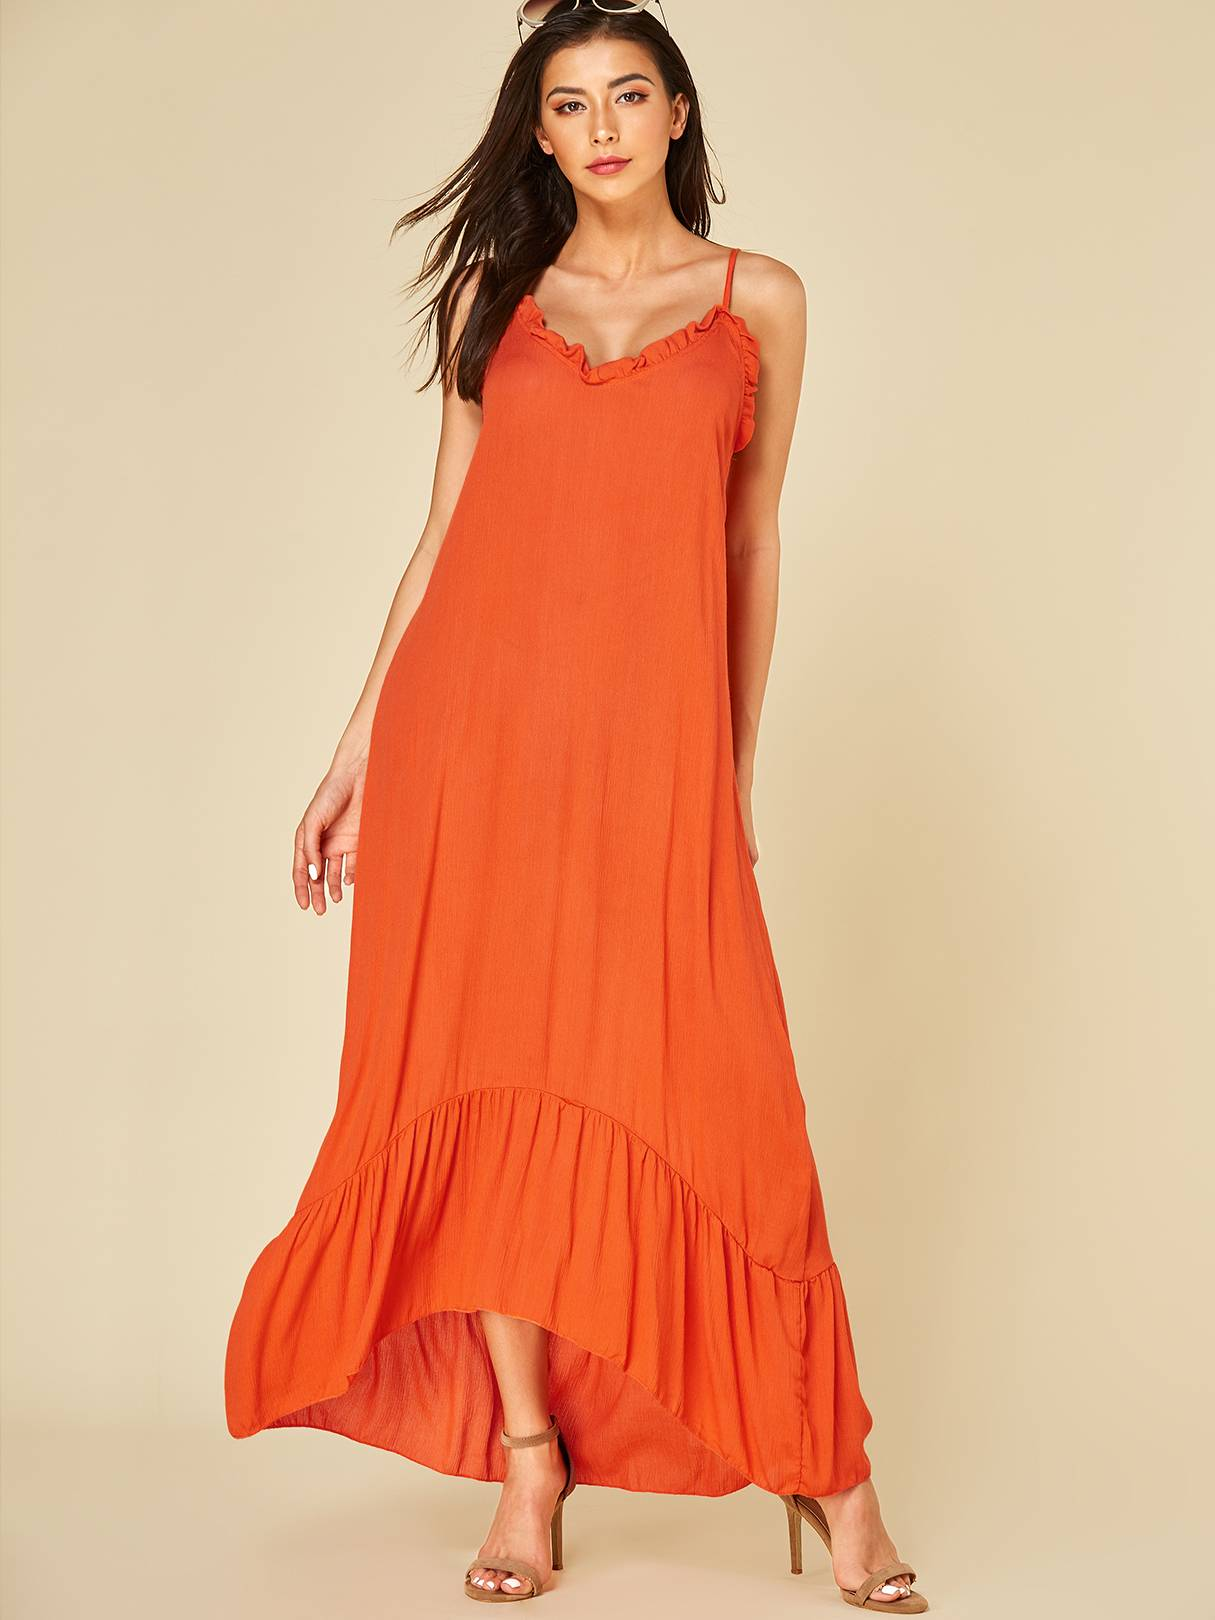 Image of Yoins Orange Backless Design V-neck Sleeveless Dress